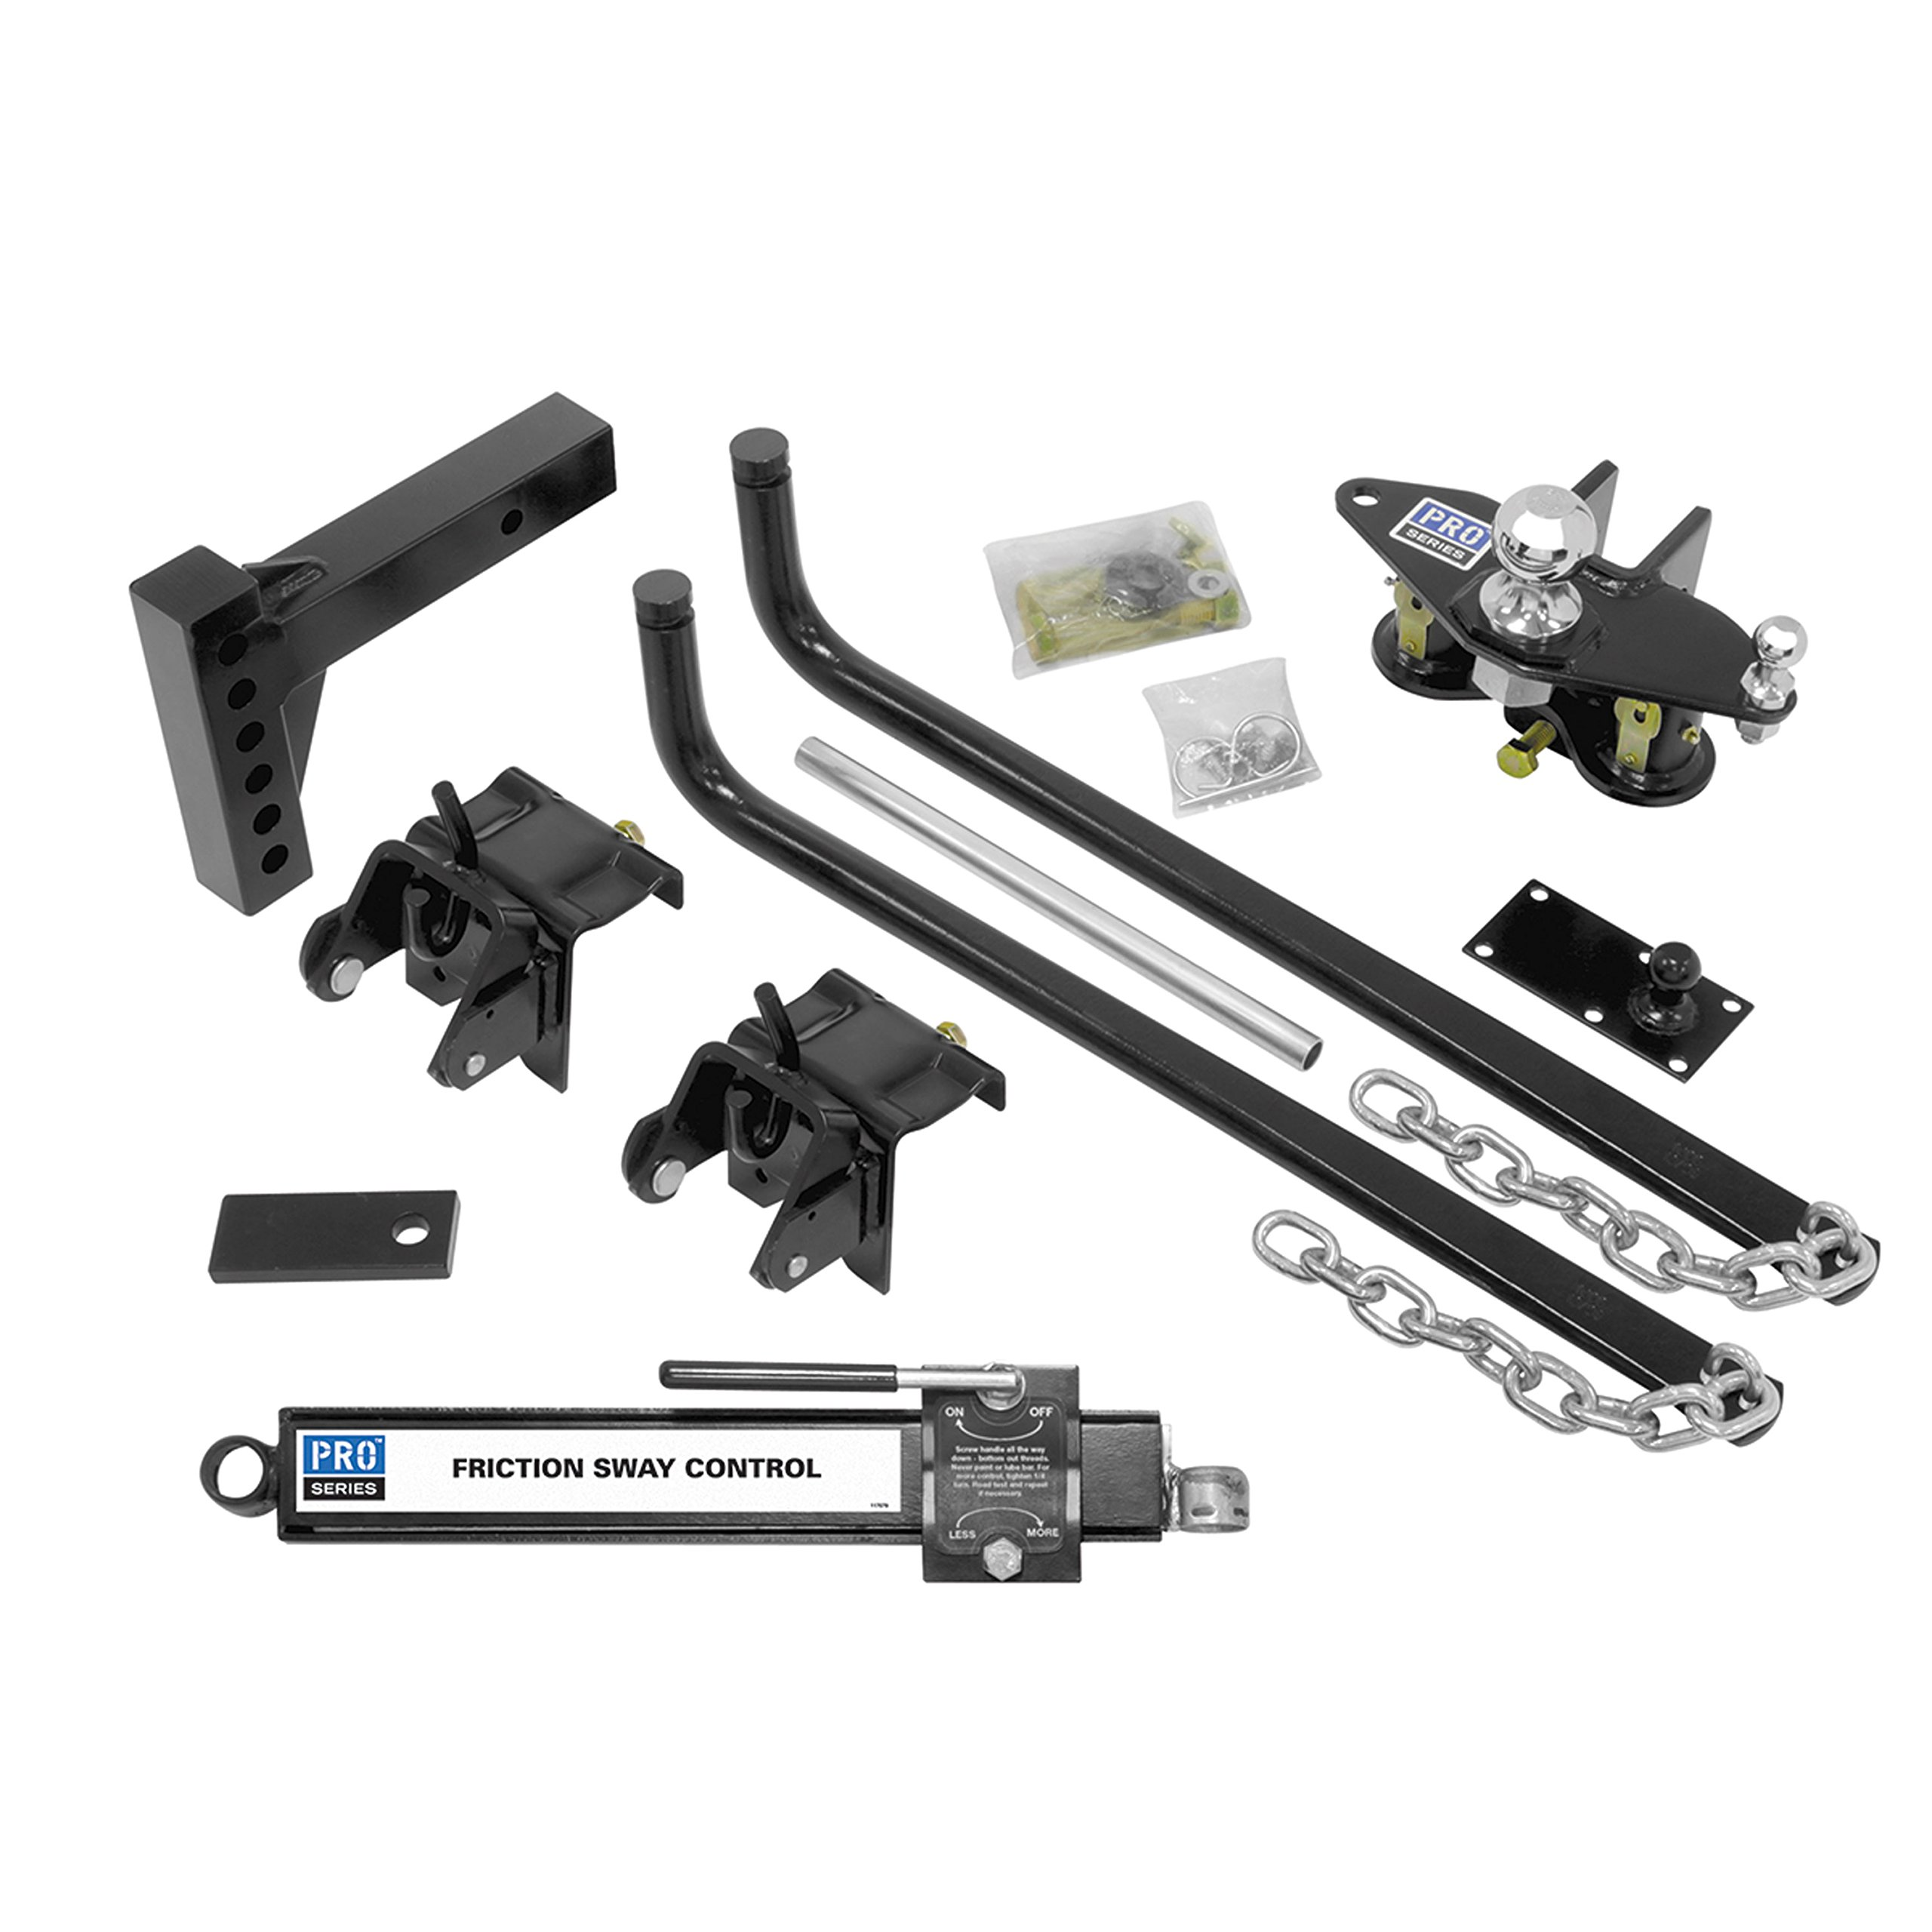 Pro Series Reese 49902 Complete Round Bar Weight Distribution Kit - 750 lbs. TW by Pro Series